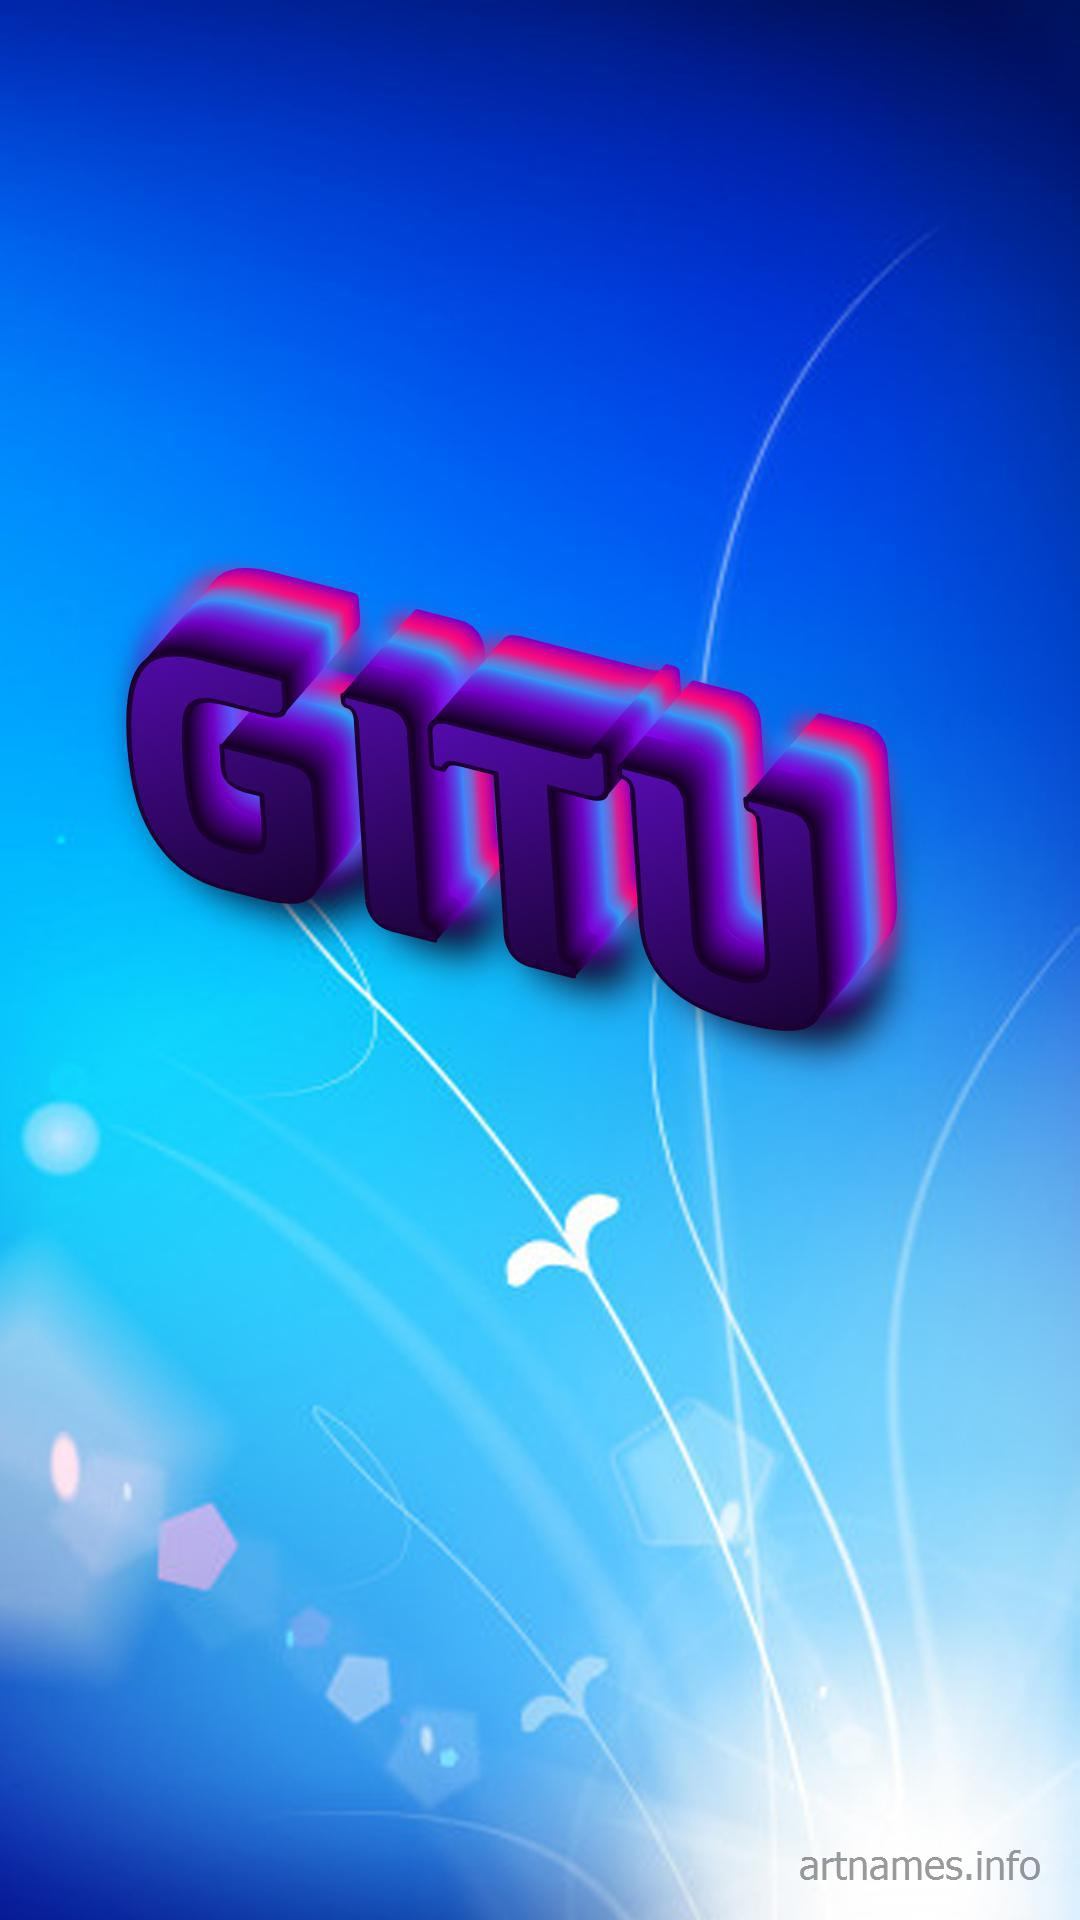 Gitu As A Art Name Wallpaper Artnames